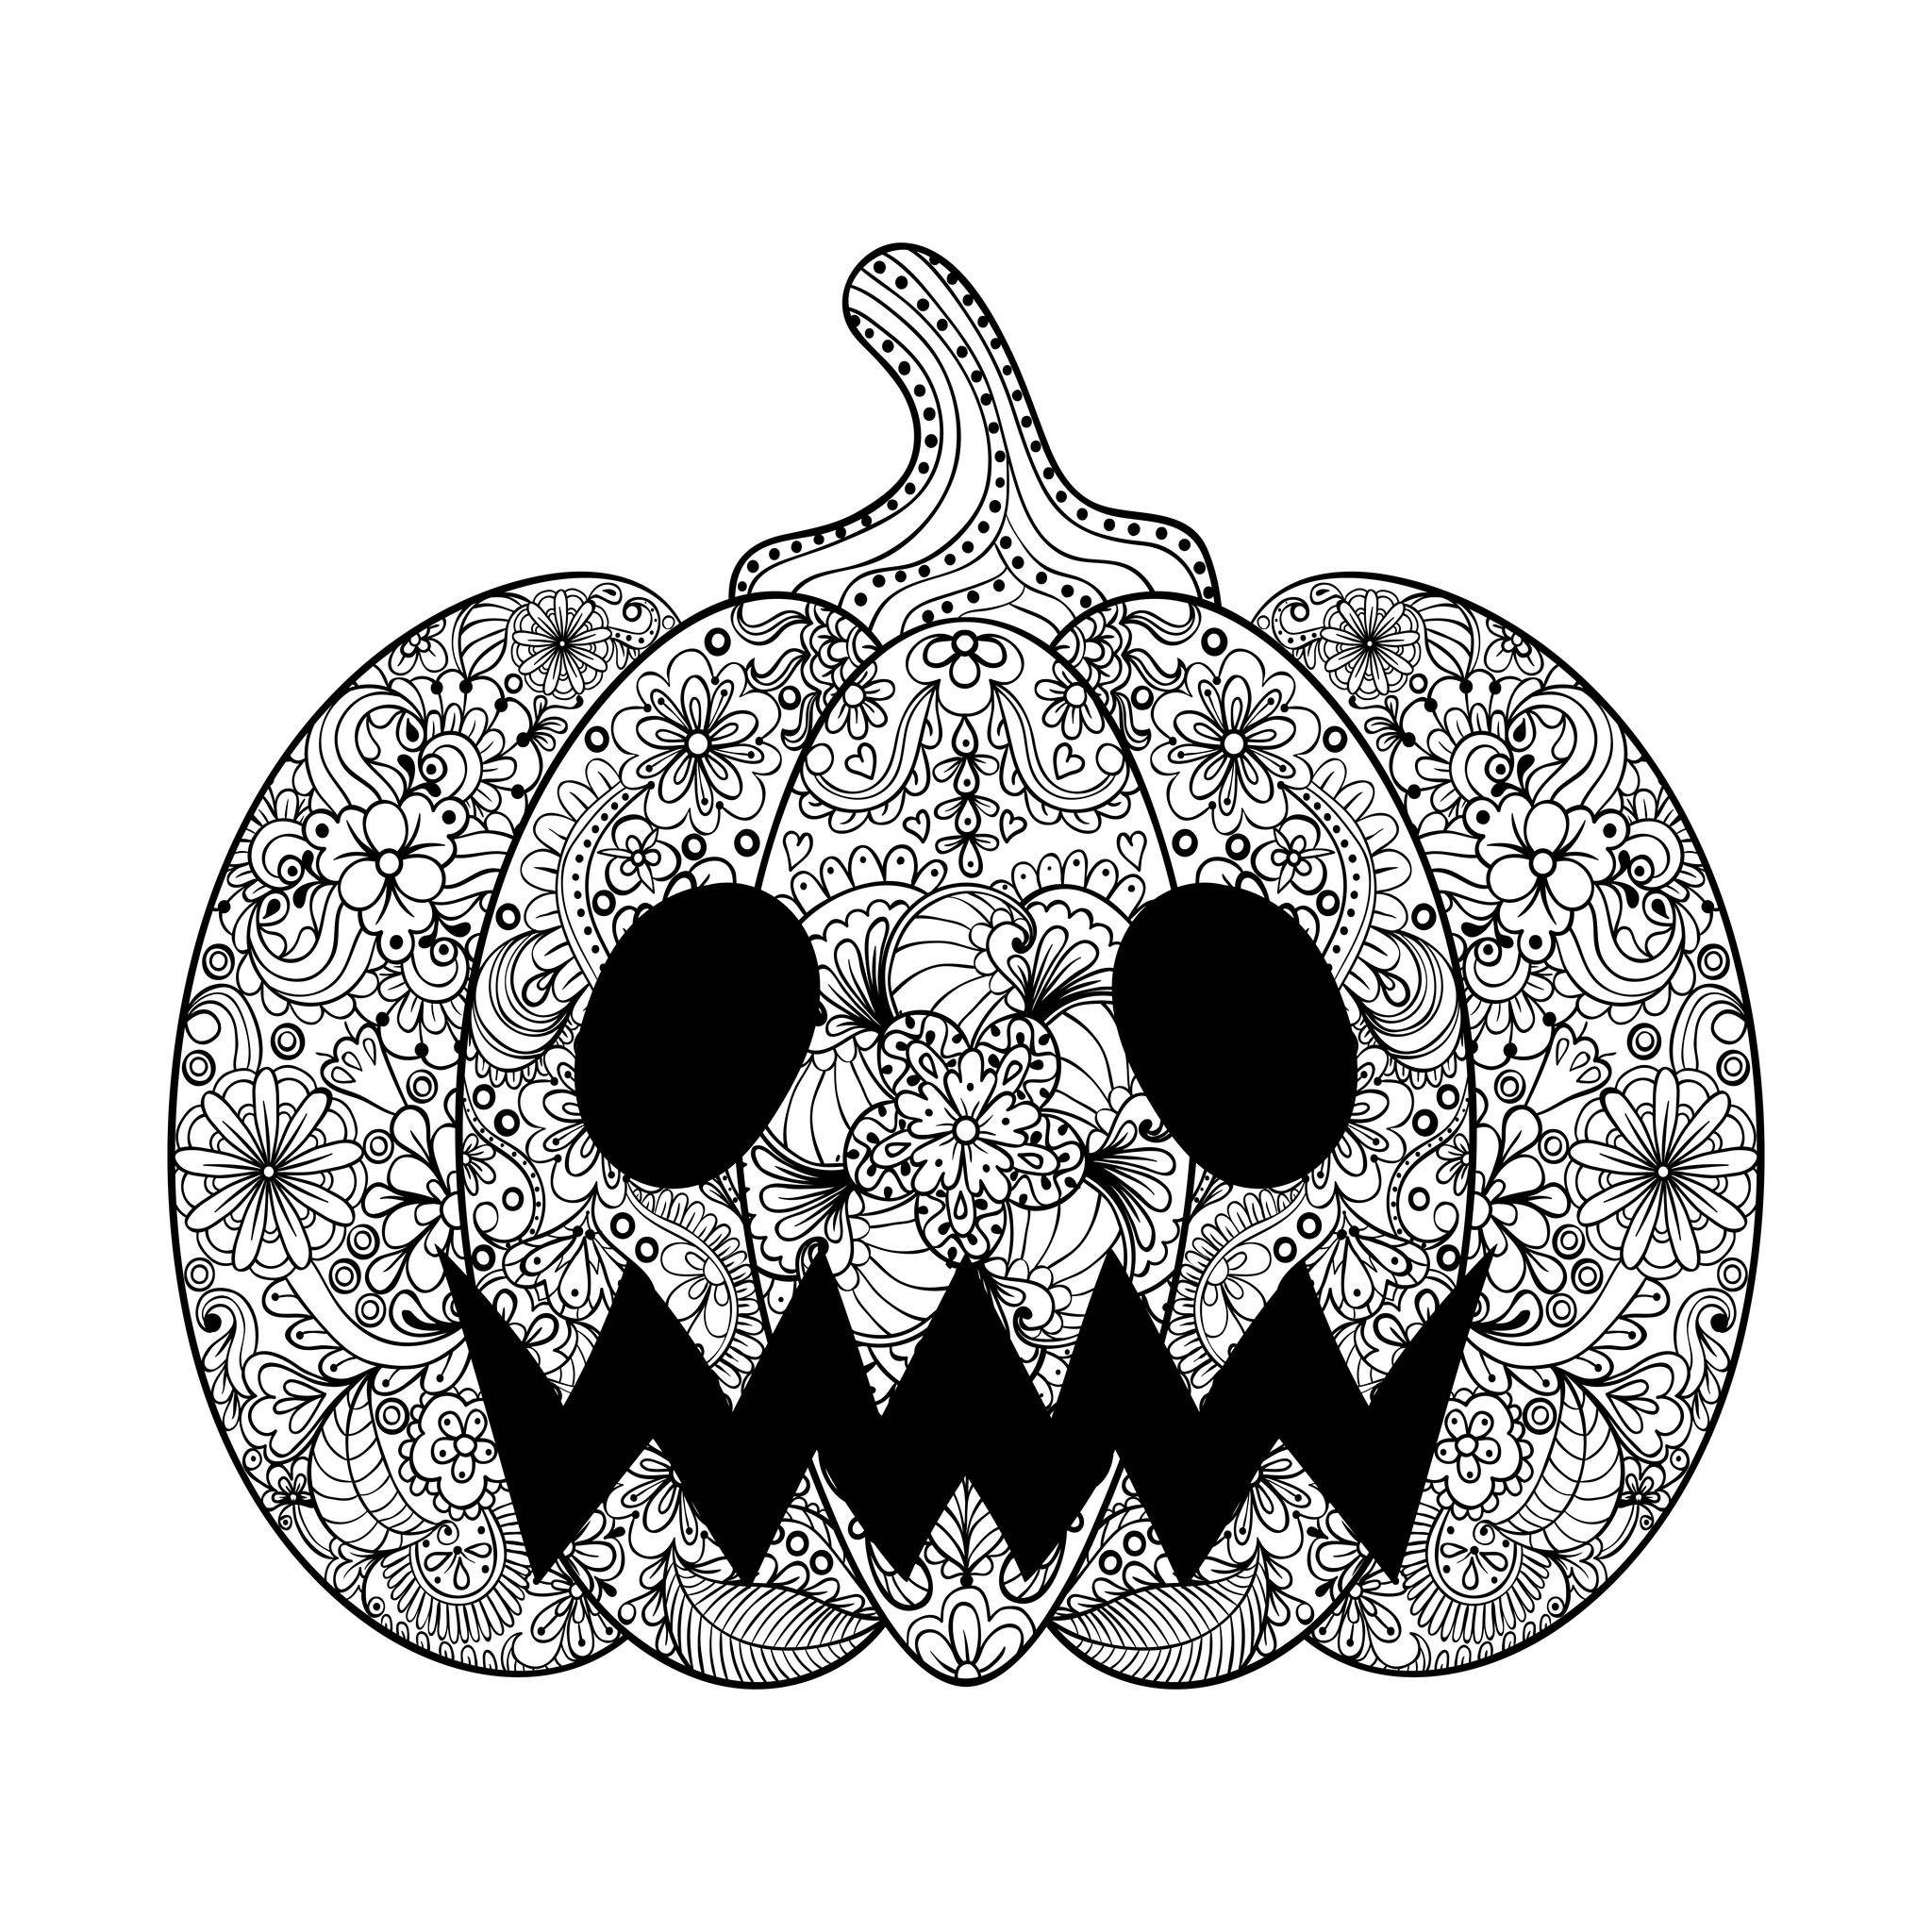 coloring halloween drawings halloween scary pumpkin halloween adult coloring pages halloween drawings coloring